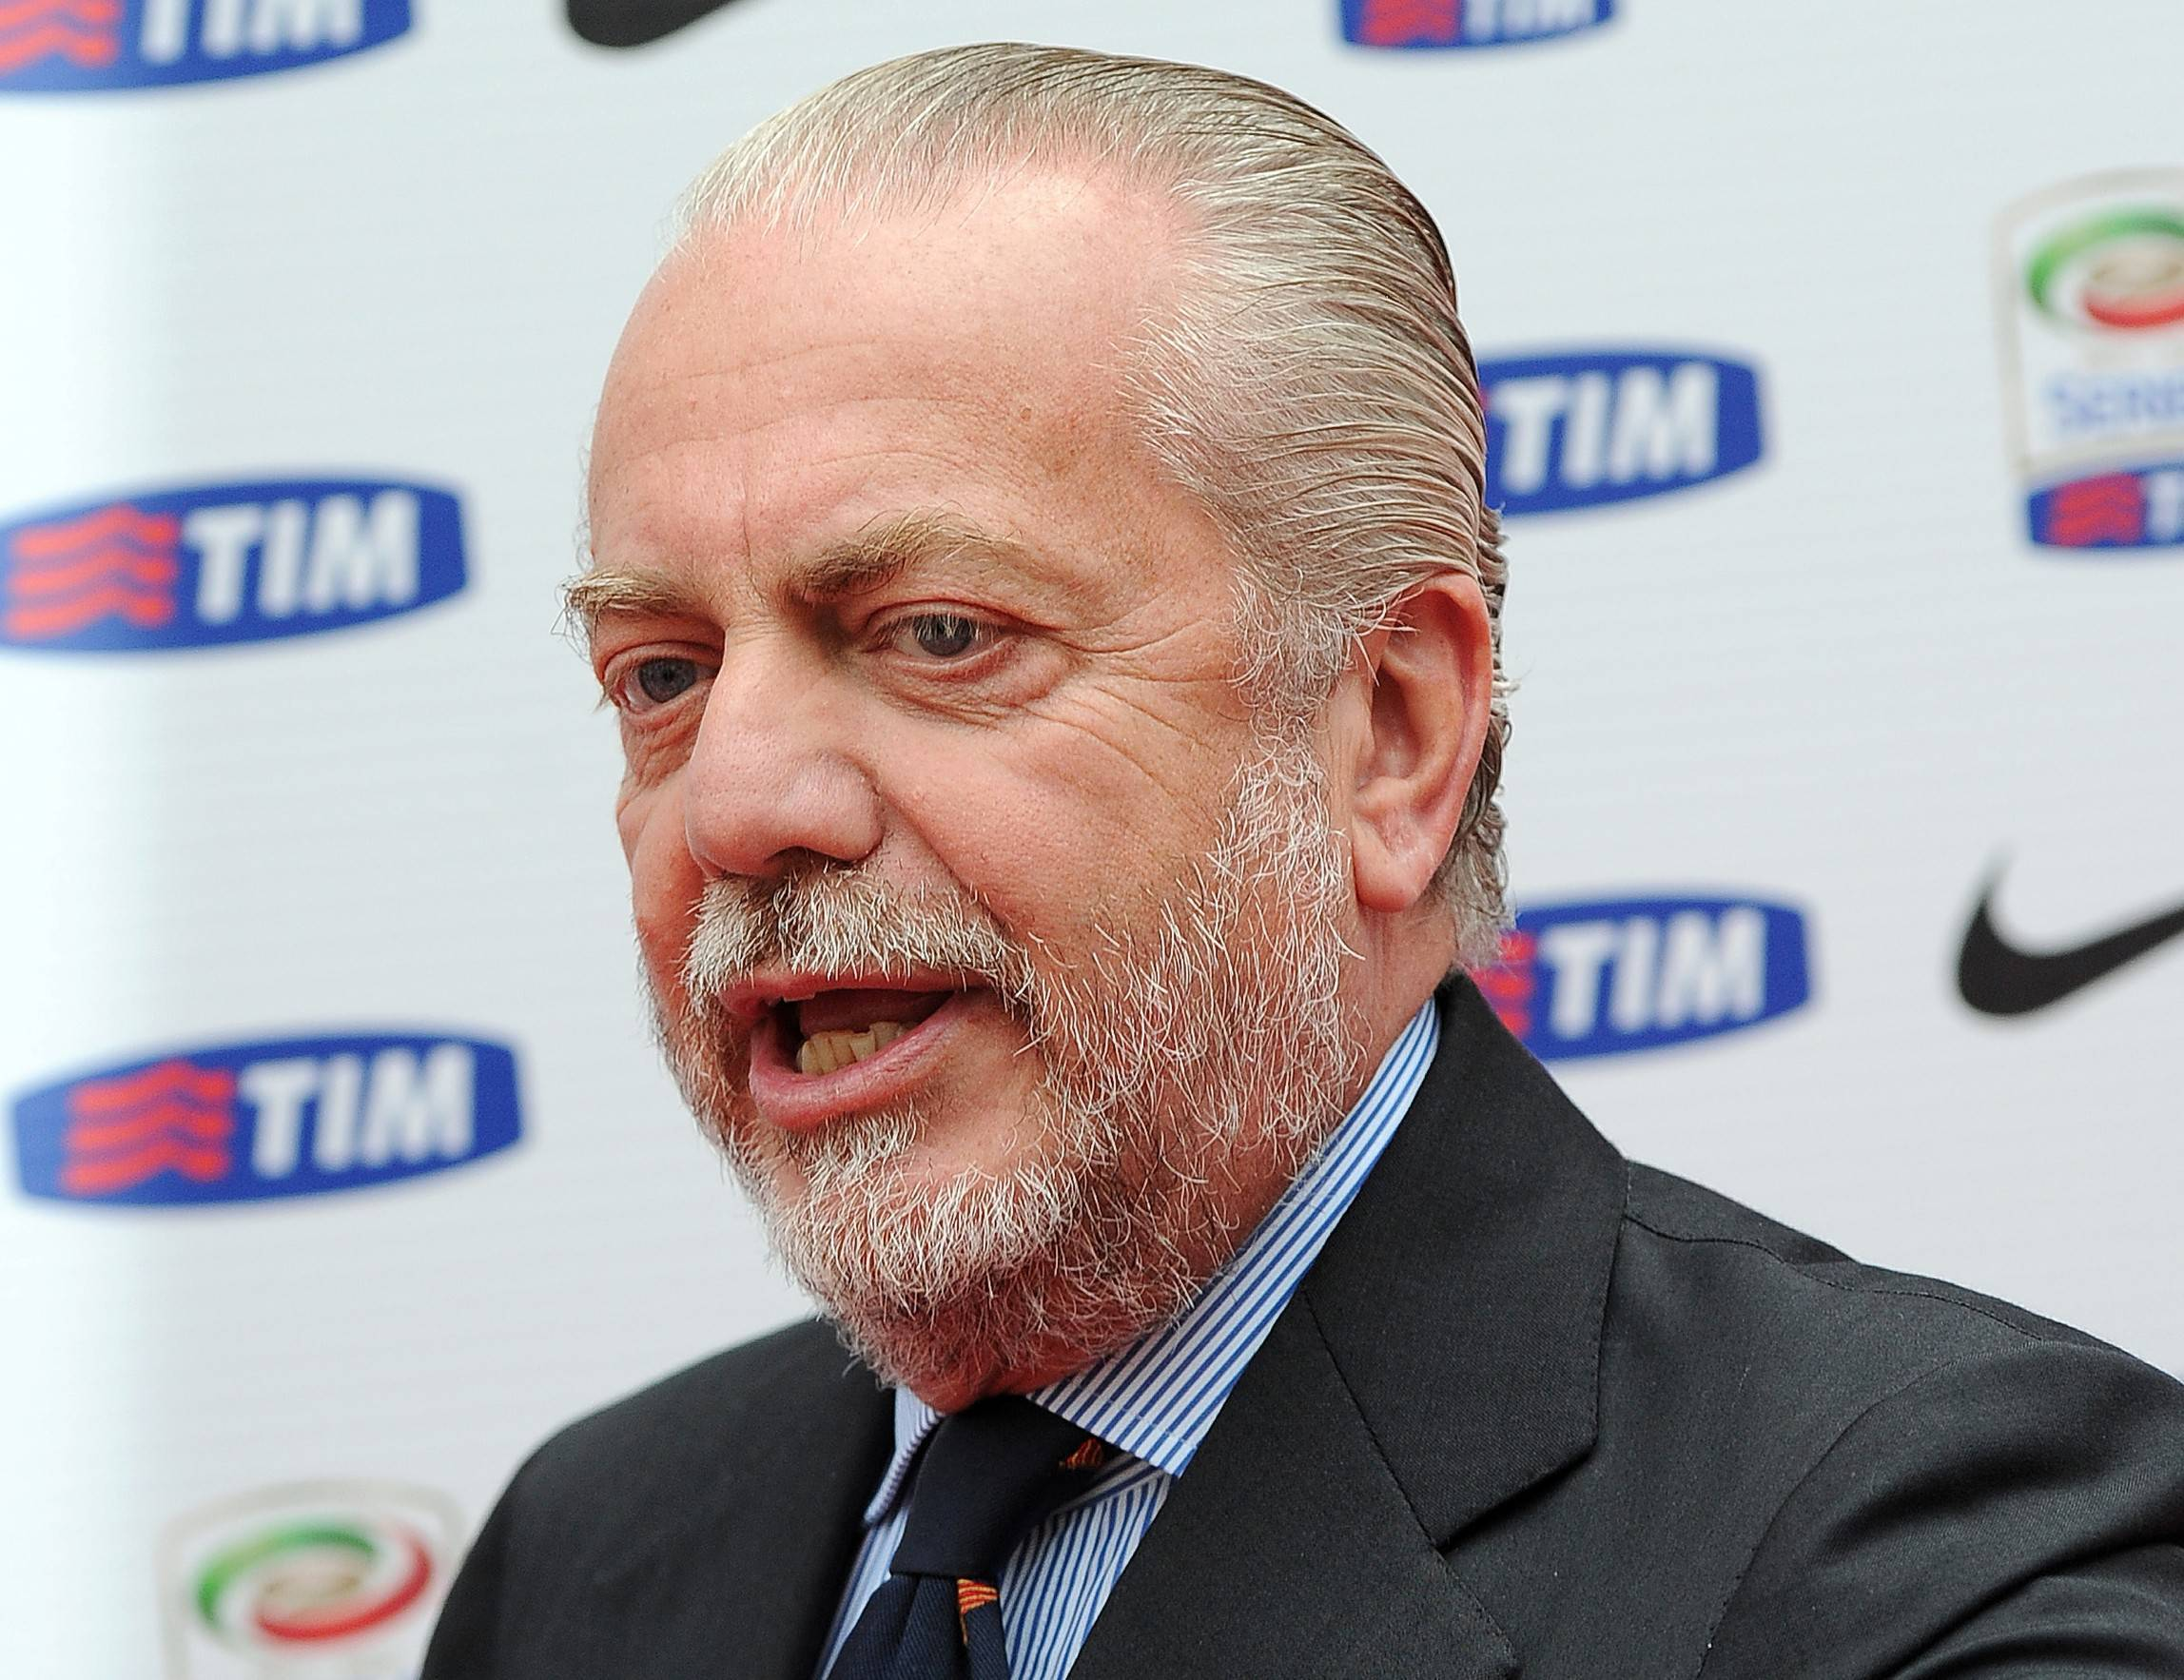 Aurelio De Laurentiis acquistare club estero